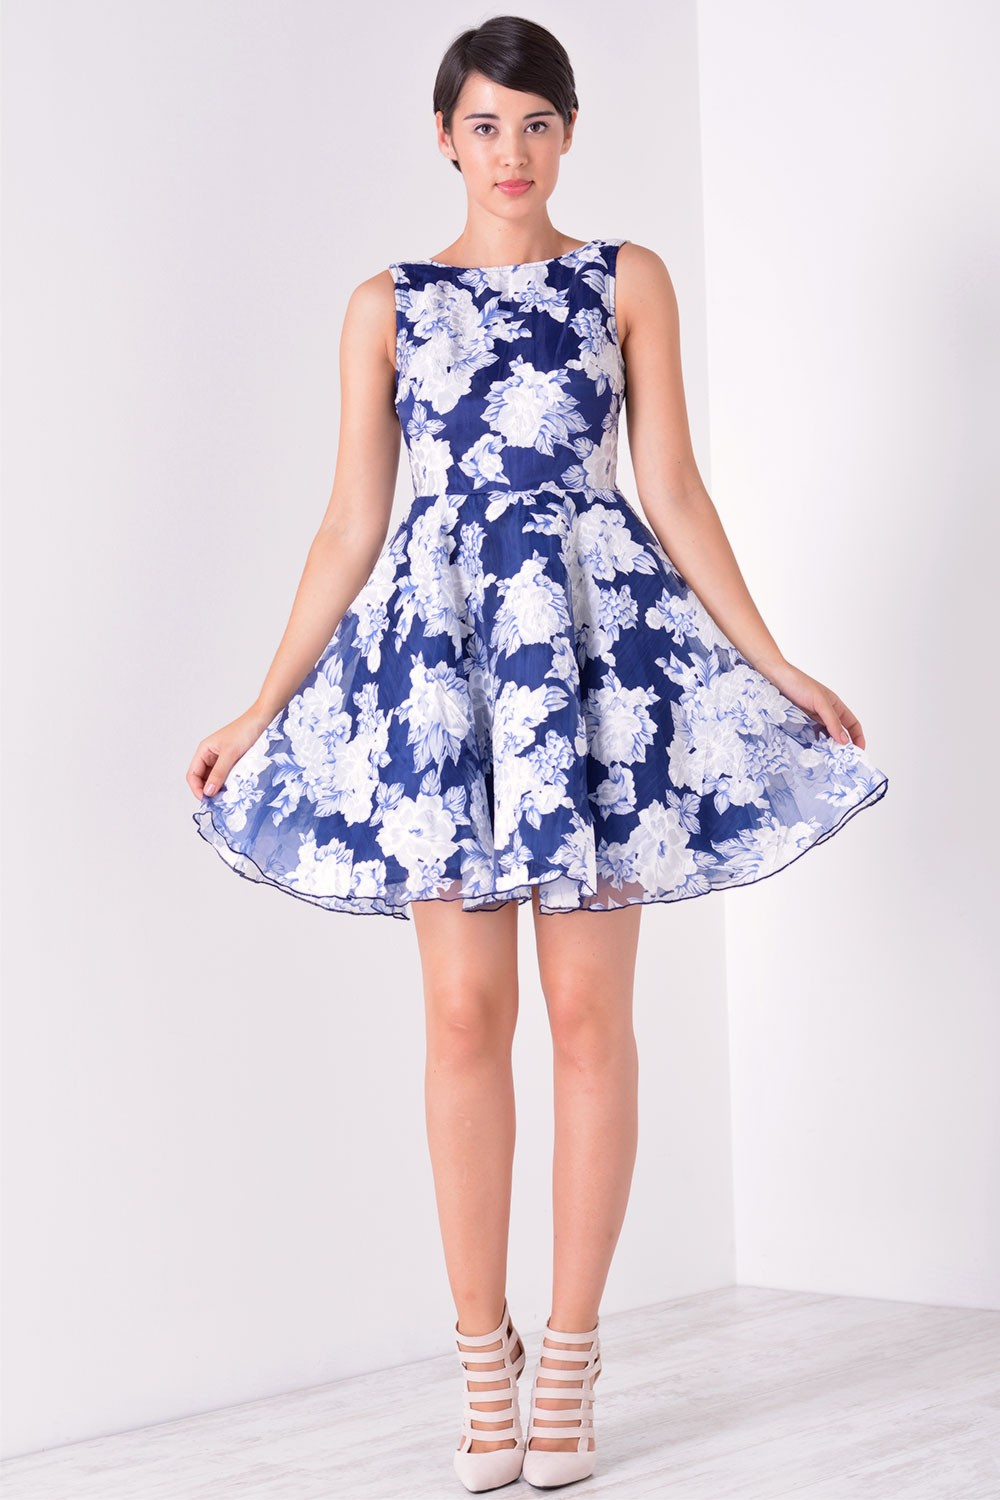 Marc Angelo Estelle Floral Prom Dress in Navy   iCLOTHING